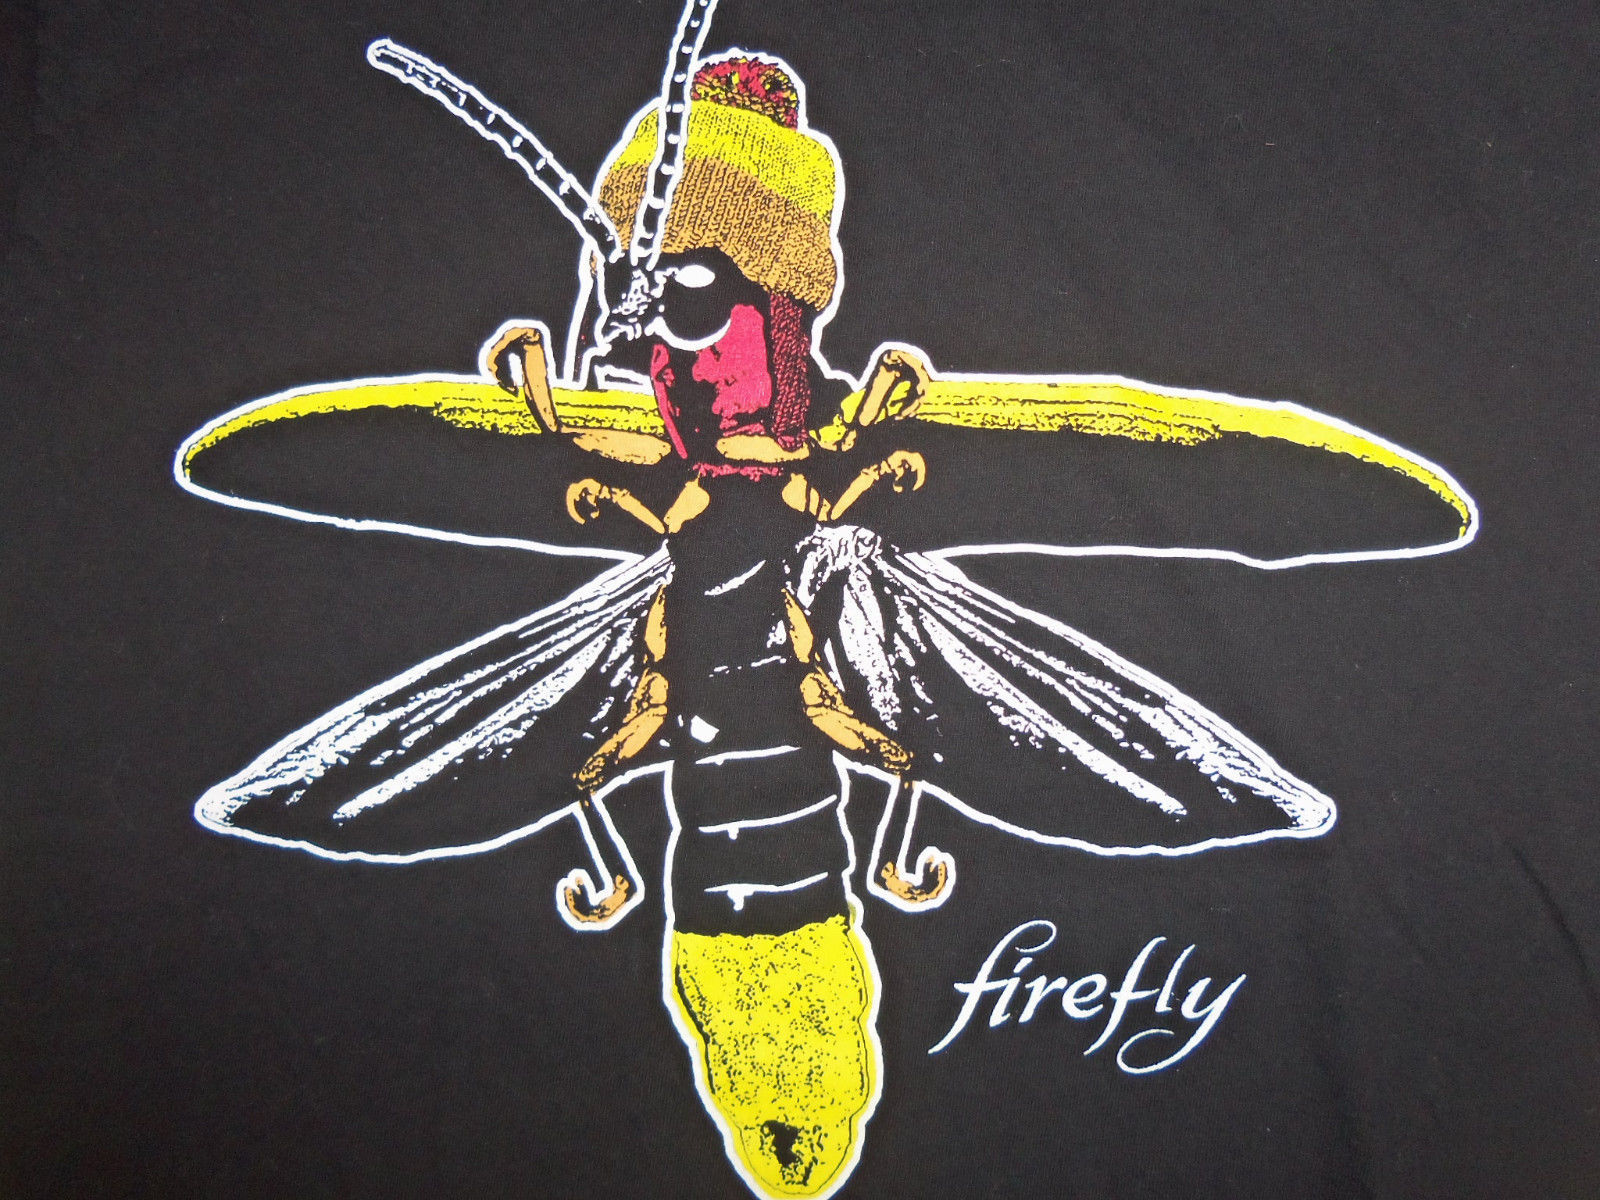 Firefly Joss Whedon Sci-Fi Fan TV Series Black Graphic Print T Shirt - S